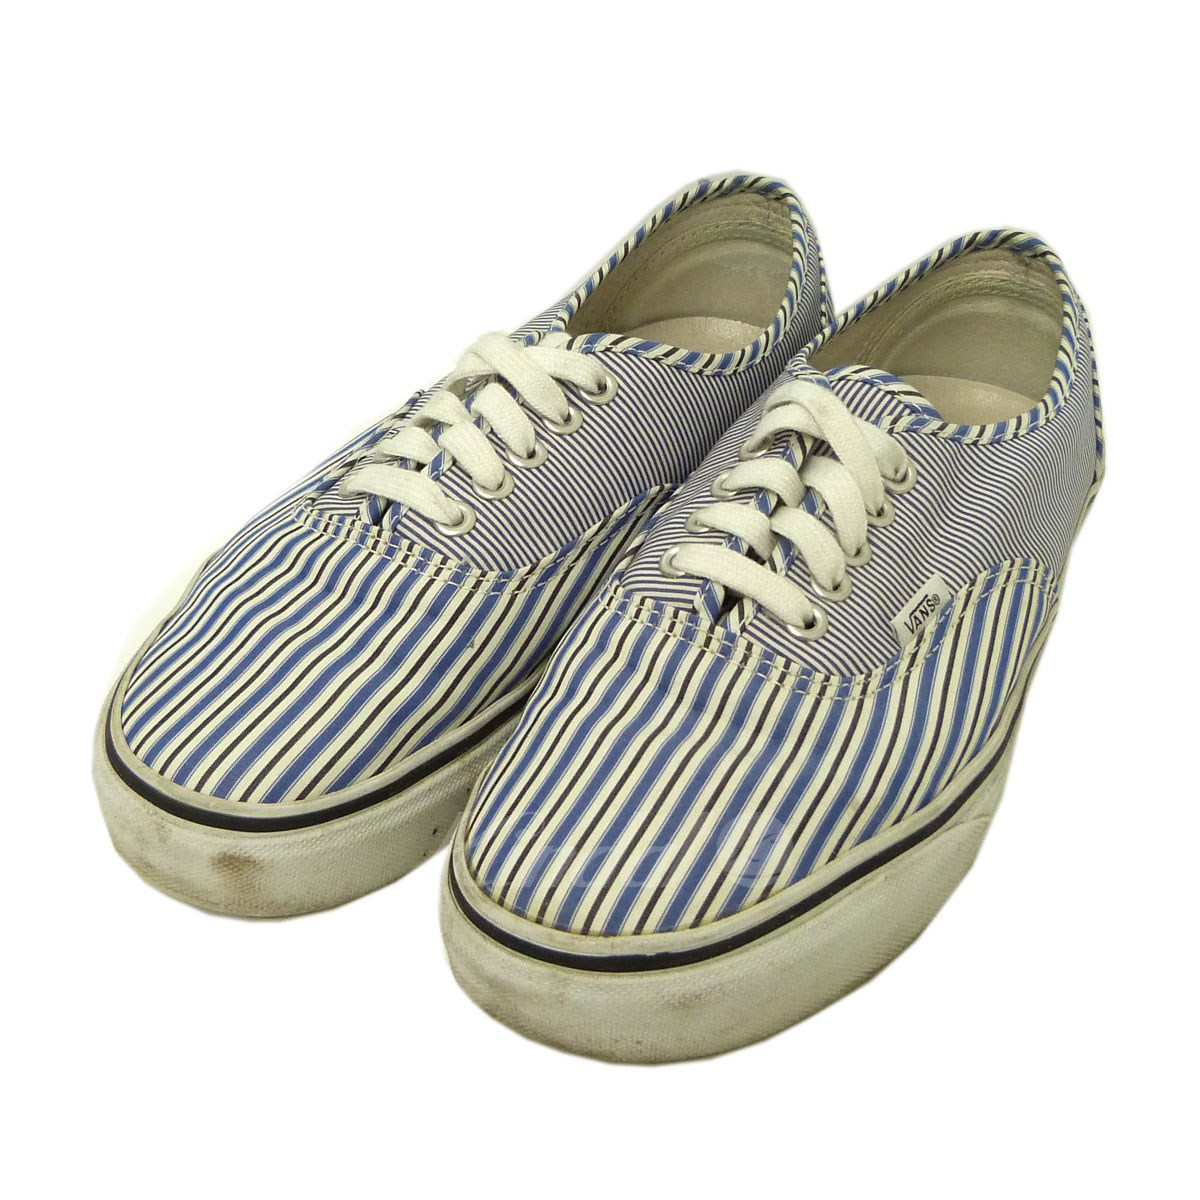 【中古】Supreme x Comme des Garcons SHIRT×VANS 12SS「Authentic Pro」ストライプスニーカー 【送料無料】 【152196】 【KIND1551】